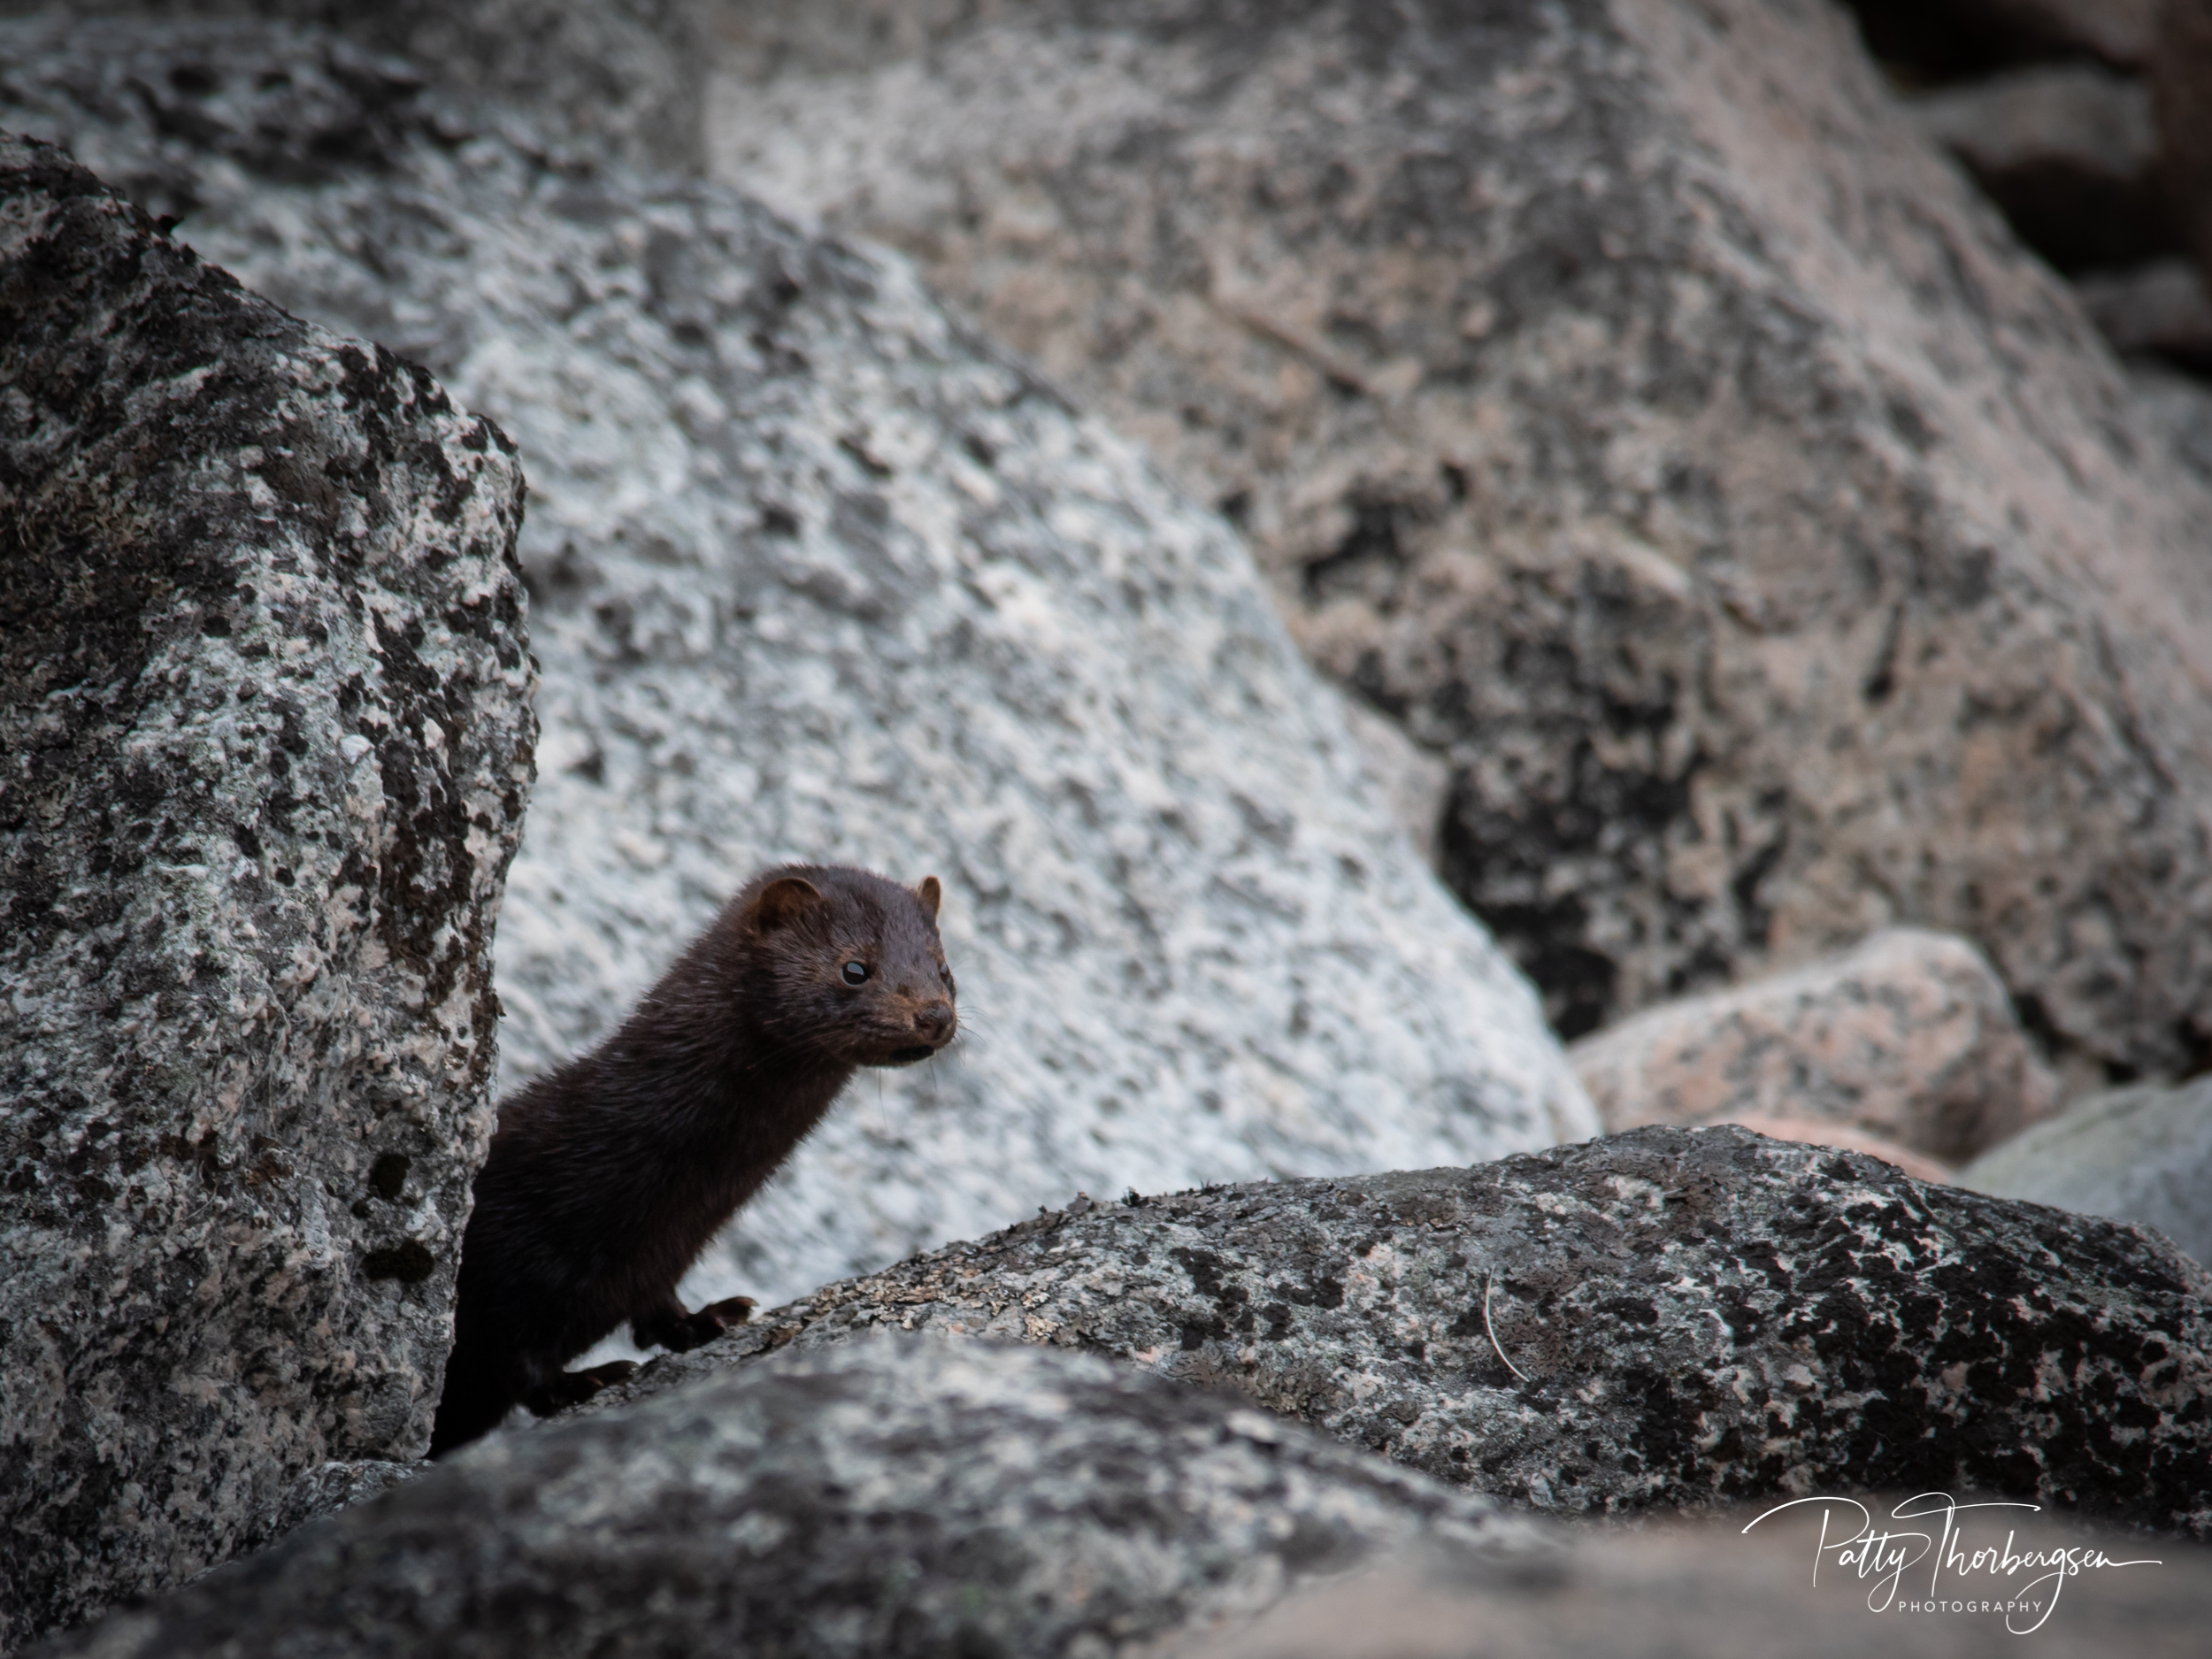 mink © Patty Thorbergsen-8860.jpg